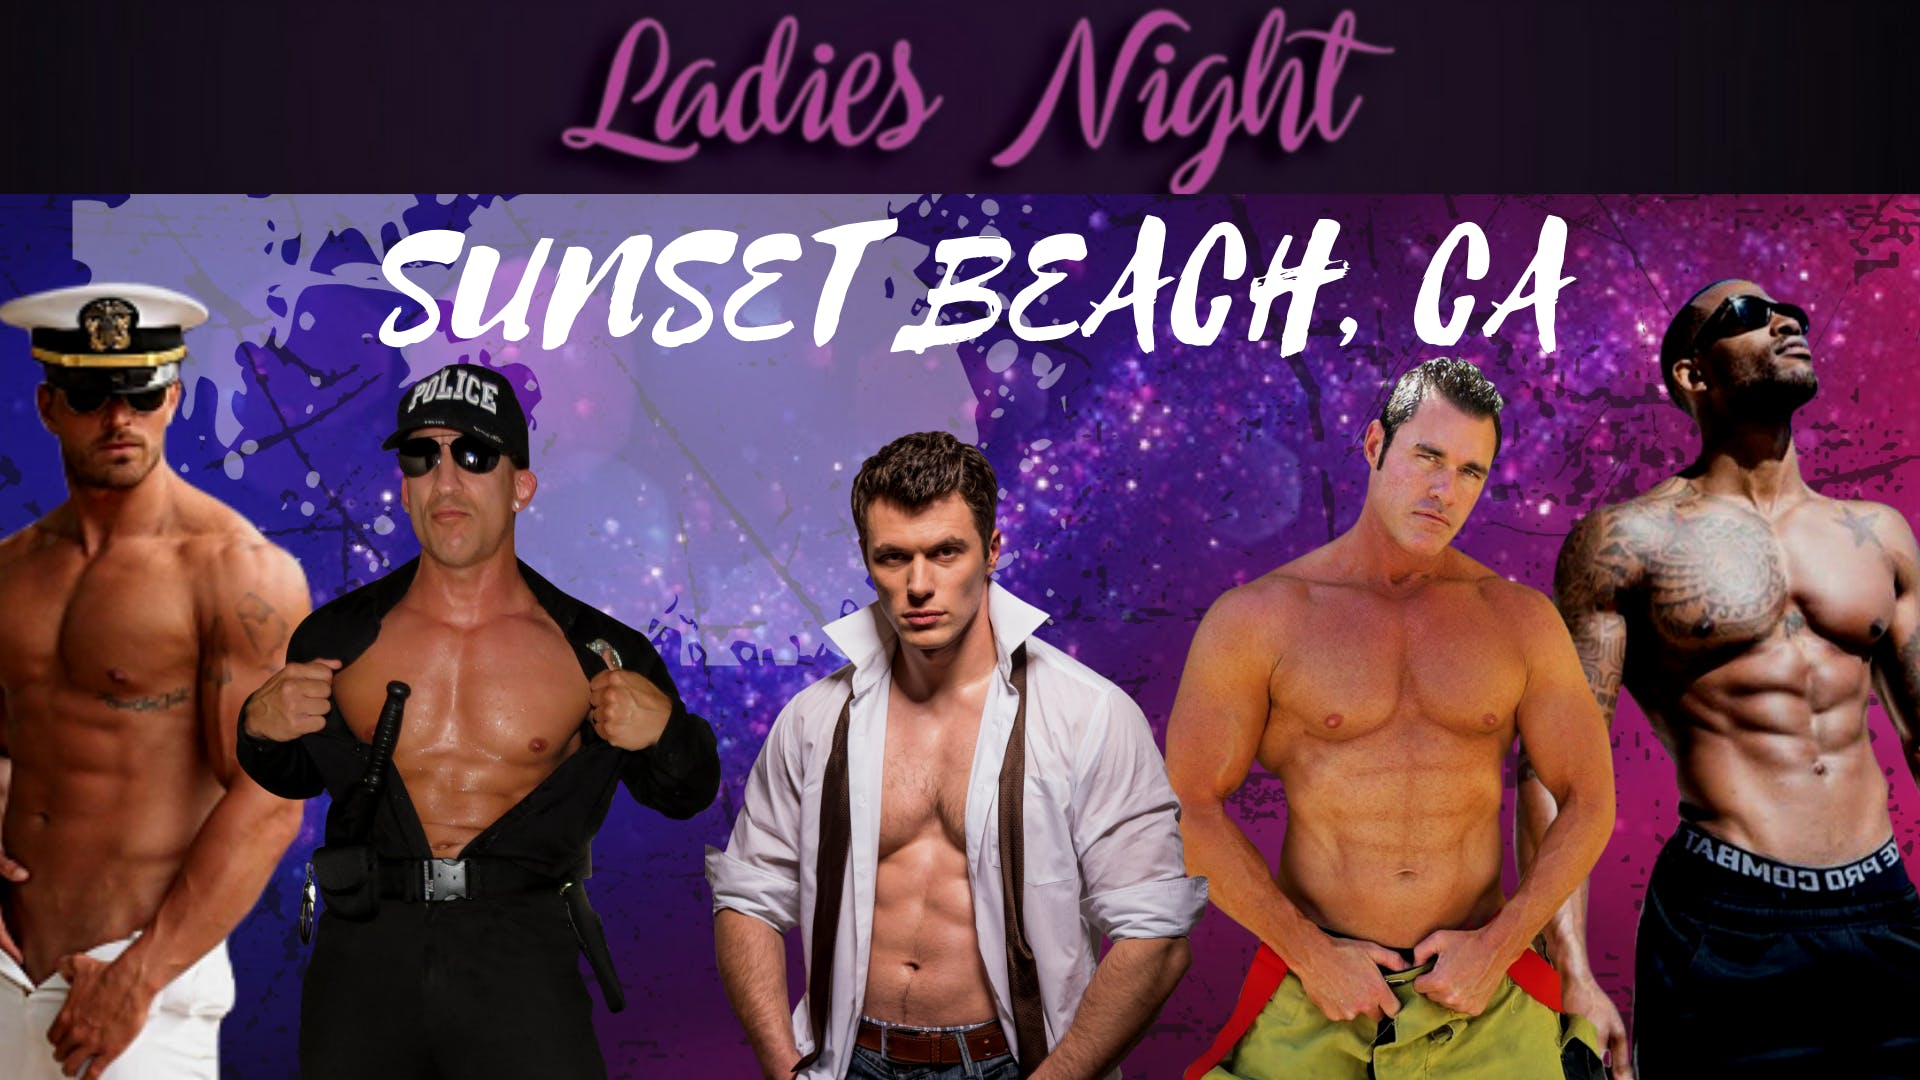 Sunset Beach, CA. 2nd Show. Magic Mike Show Live. Mother's Tavern